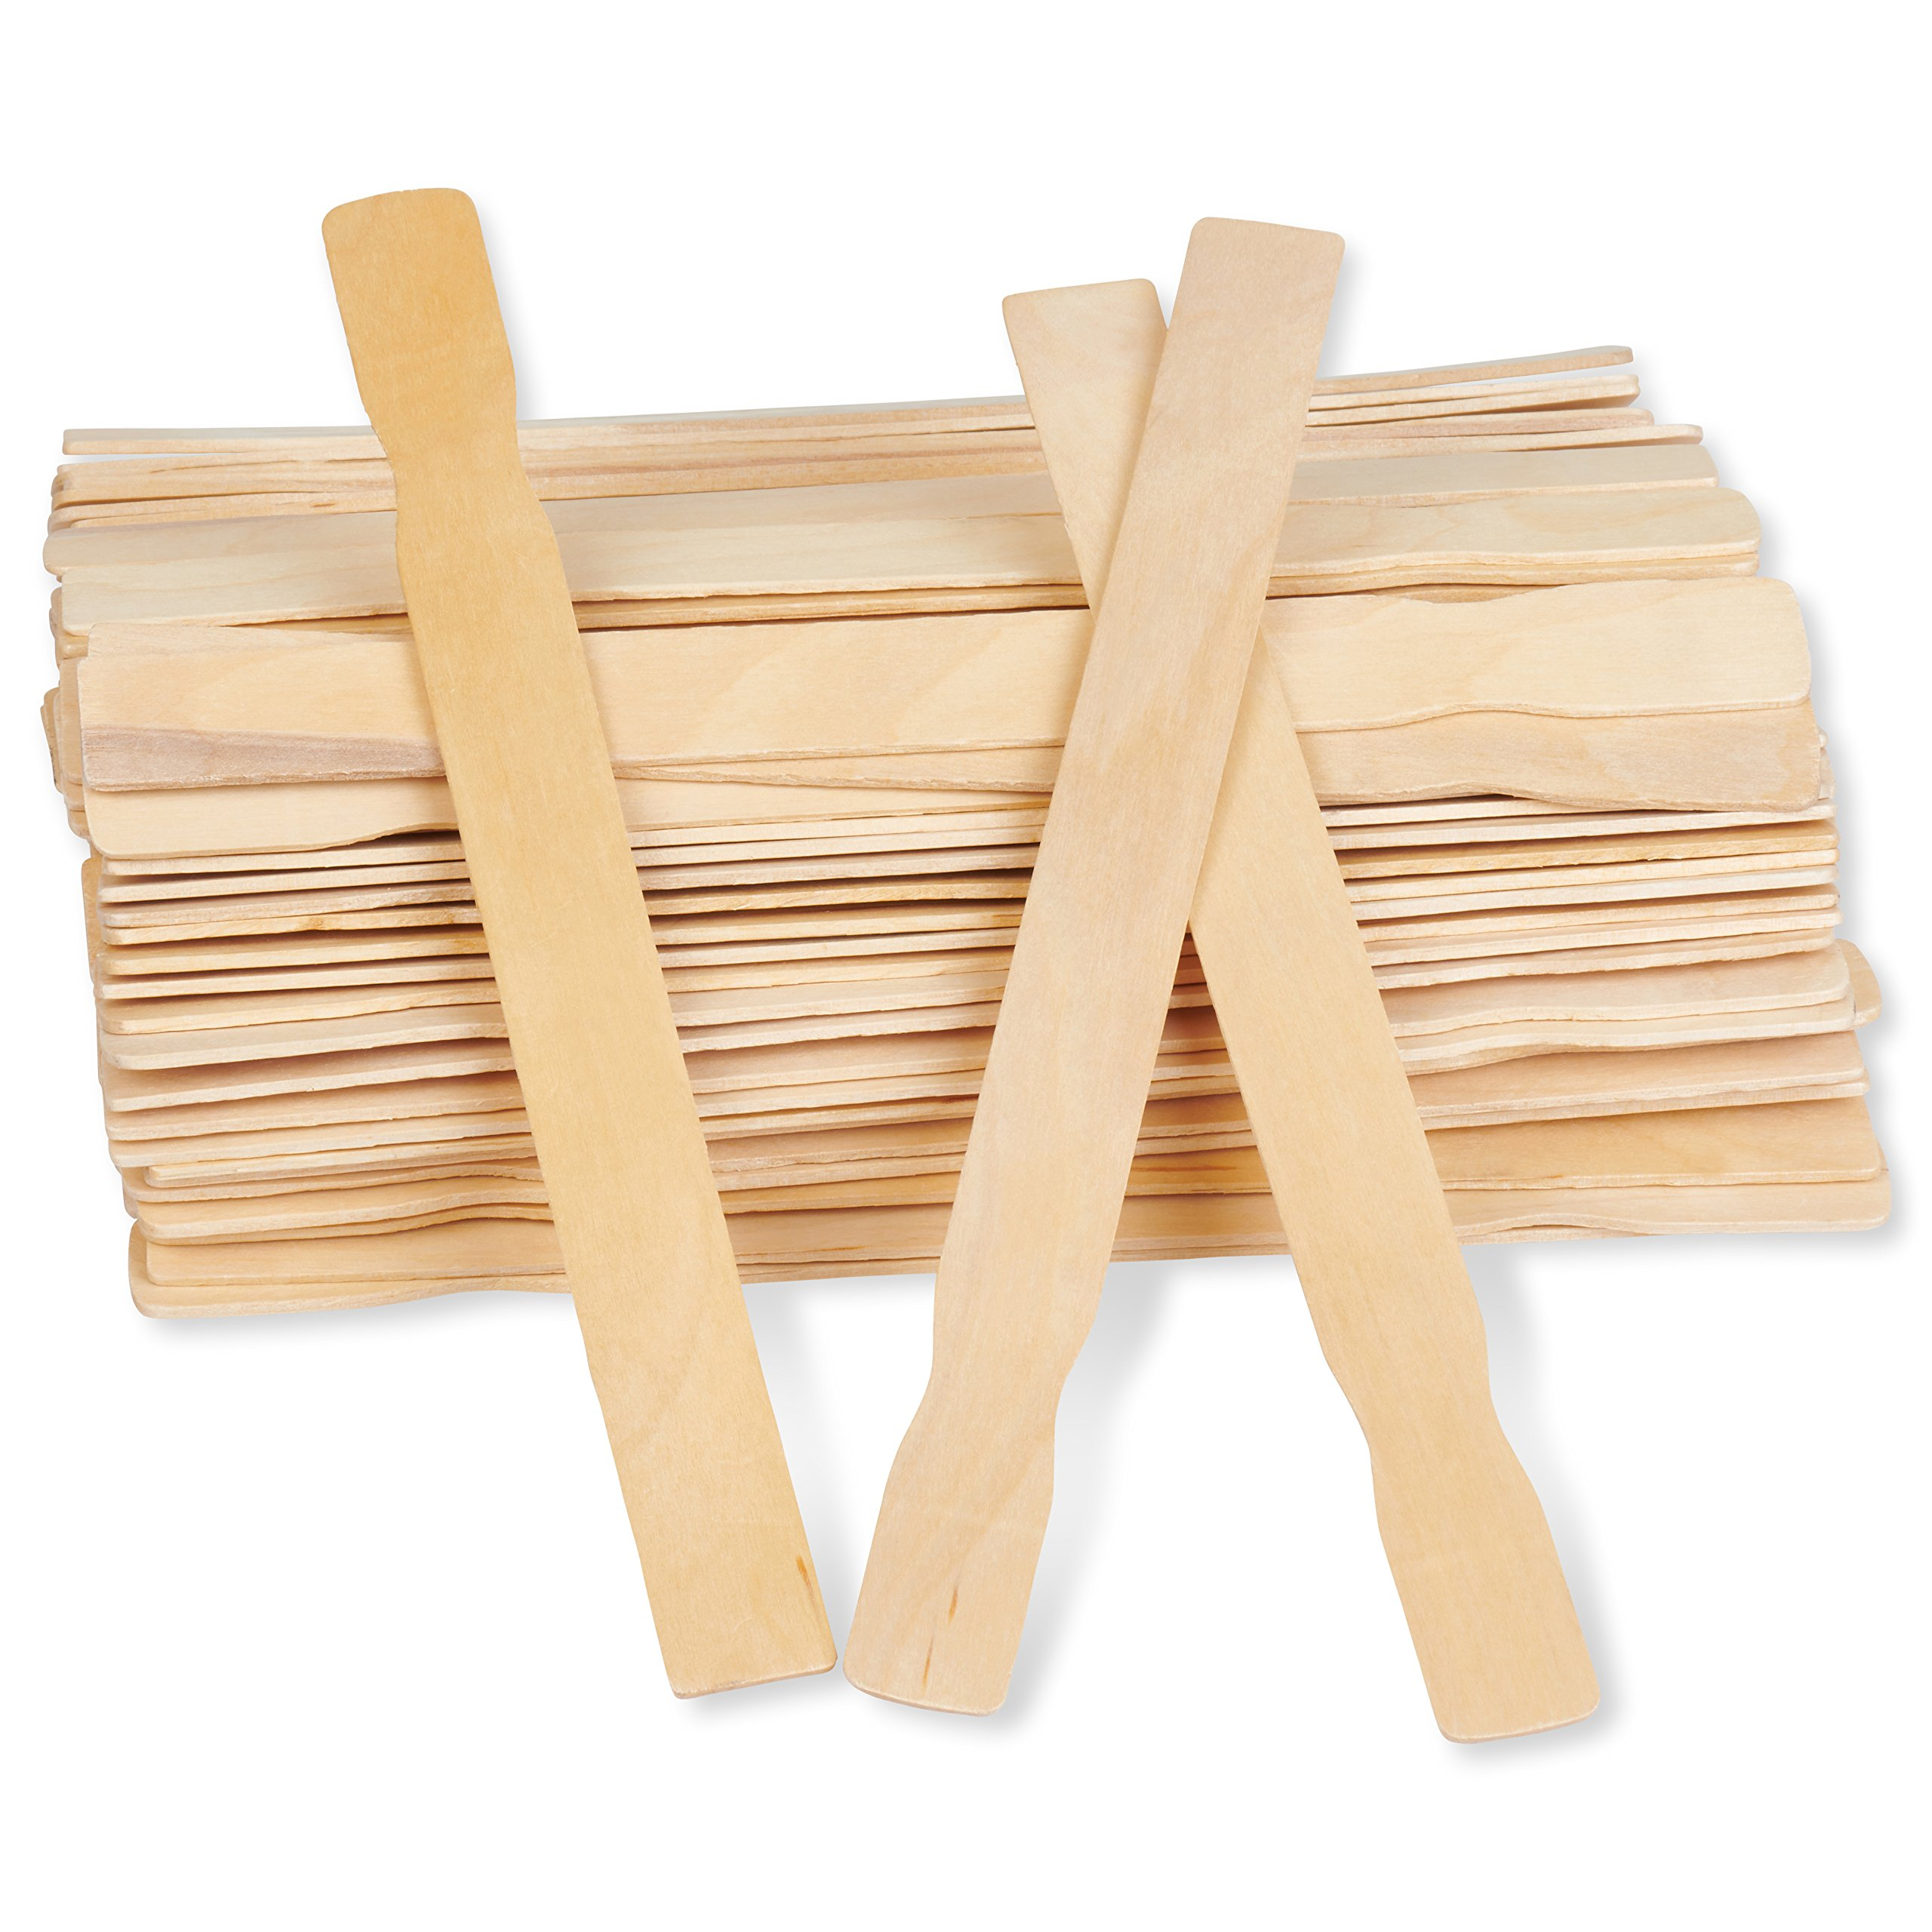 Edgeway USA Paint Sticks Natural Eco-friendly Biodegradable Birchwood Hardwood 100 pieces 12 Inch Bulk Unfinished Large Long Flat Paddles for Mixing Paint, Liquids and Great for Wooden Craft Supplies